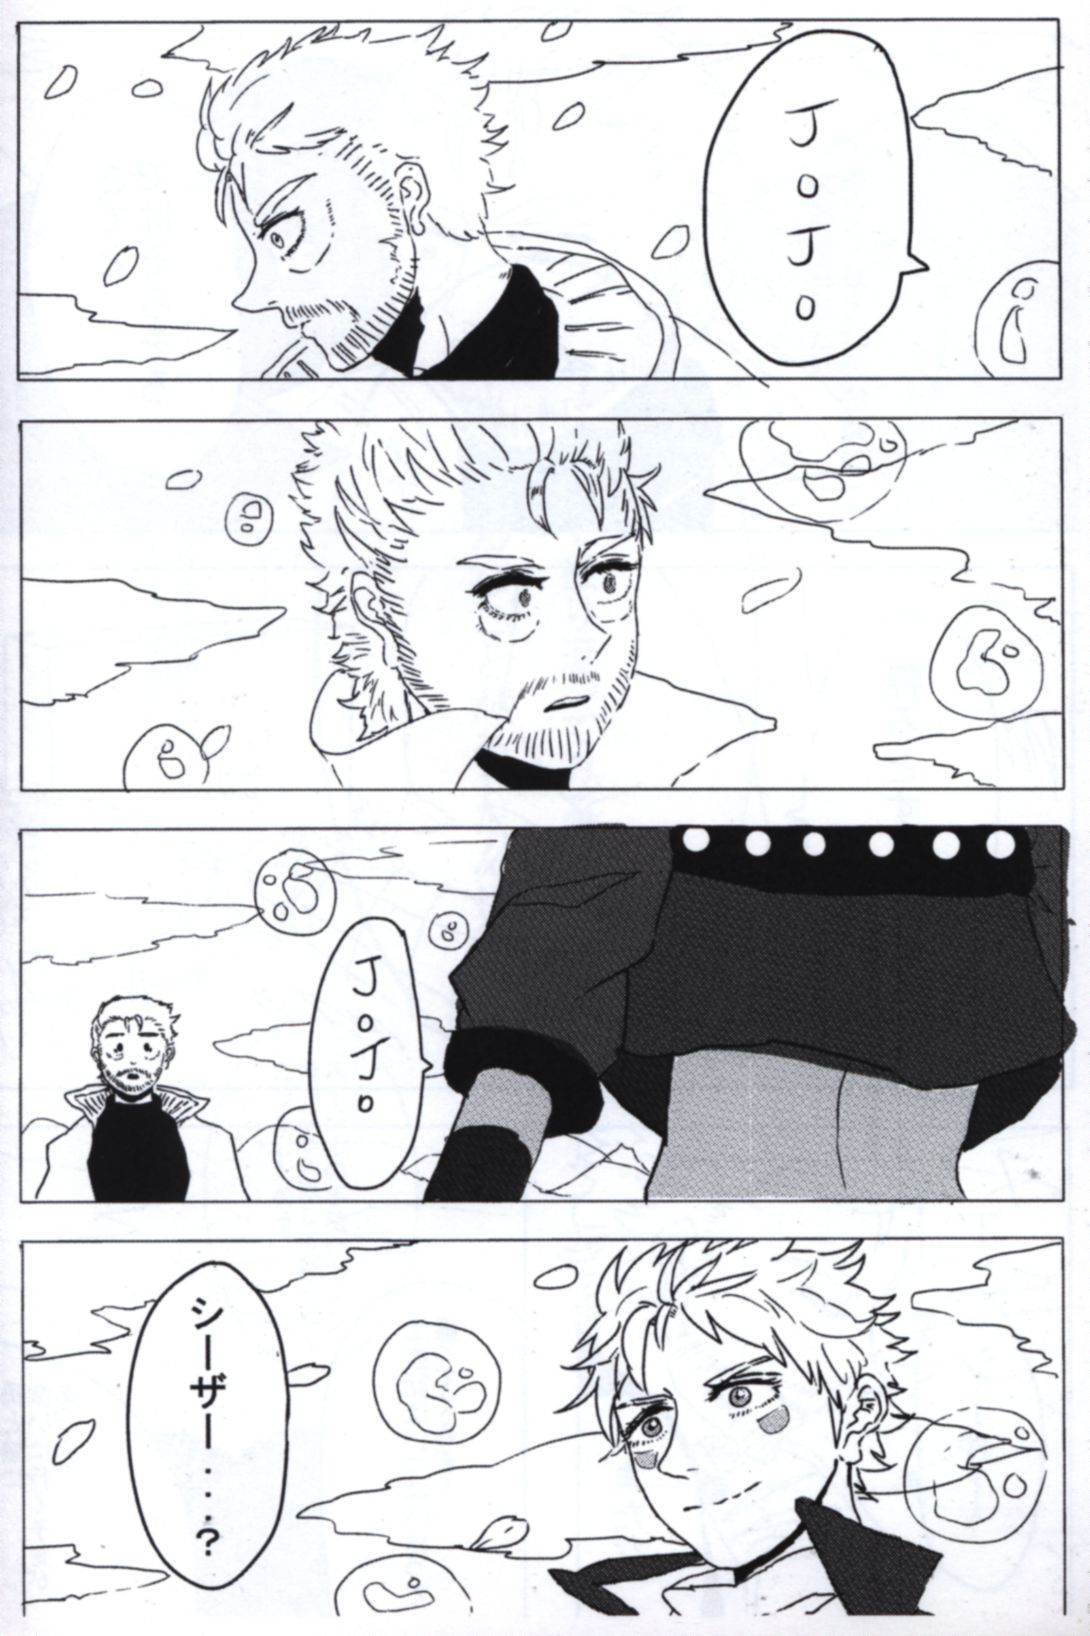 Doujinshi - Jojo Part 2: Battle Tendency / Caesar x Joseph (Everyday) / さめれど